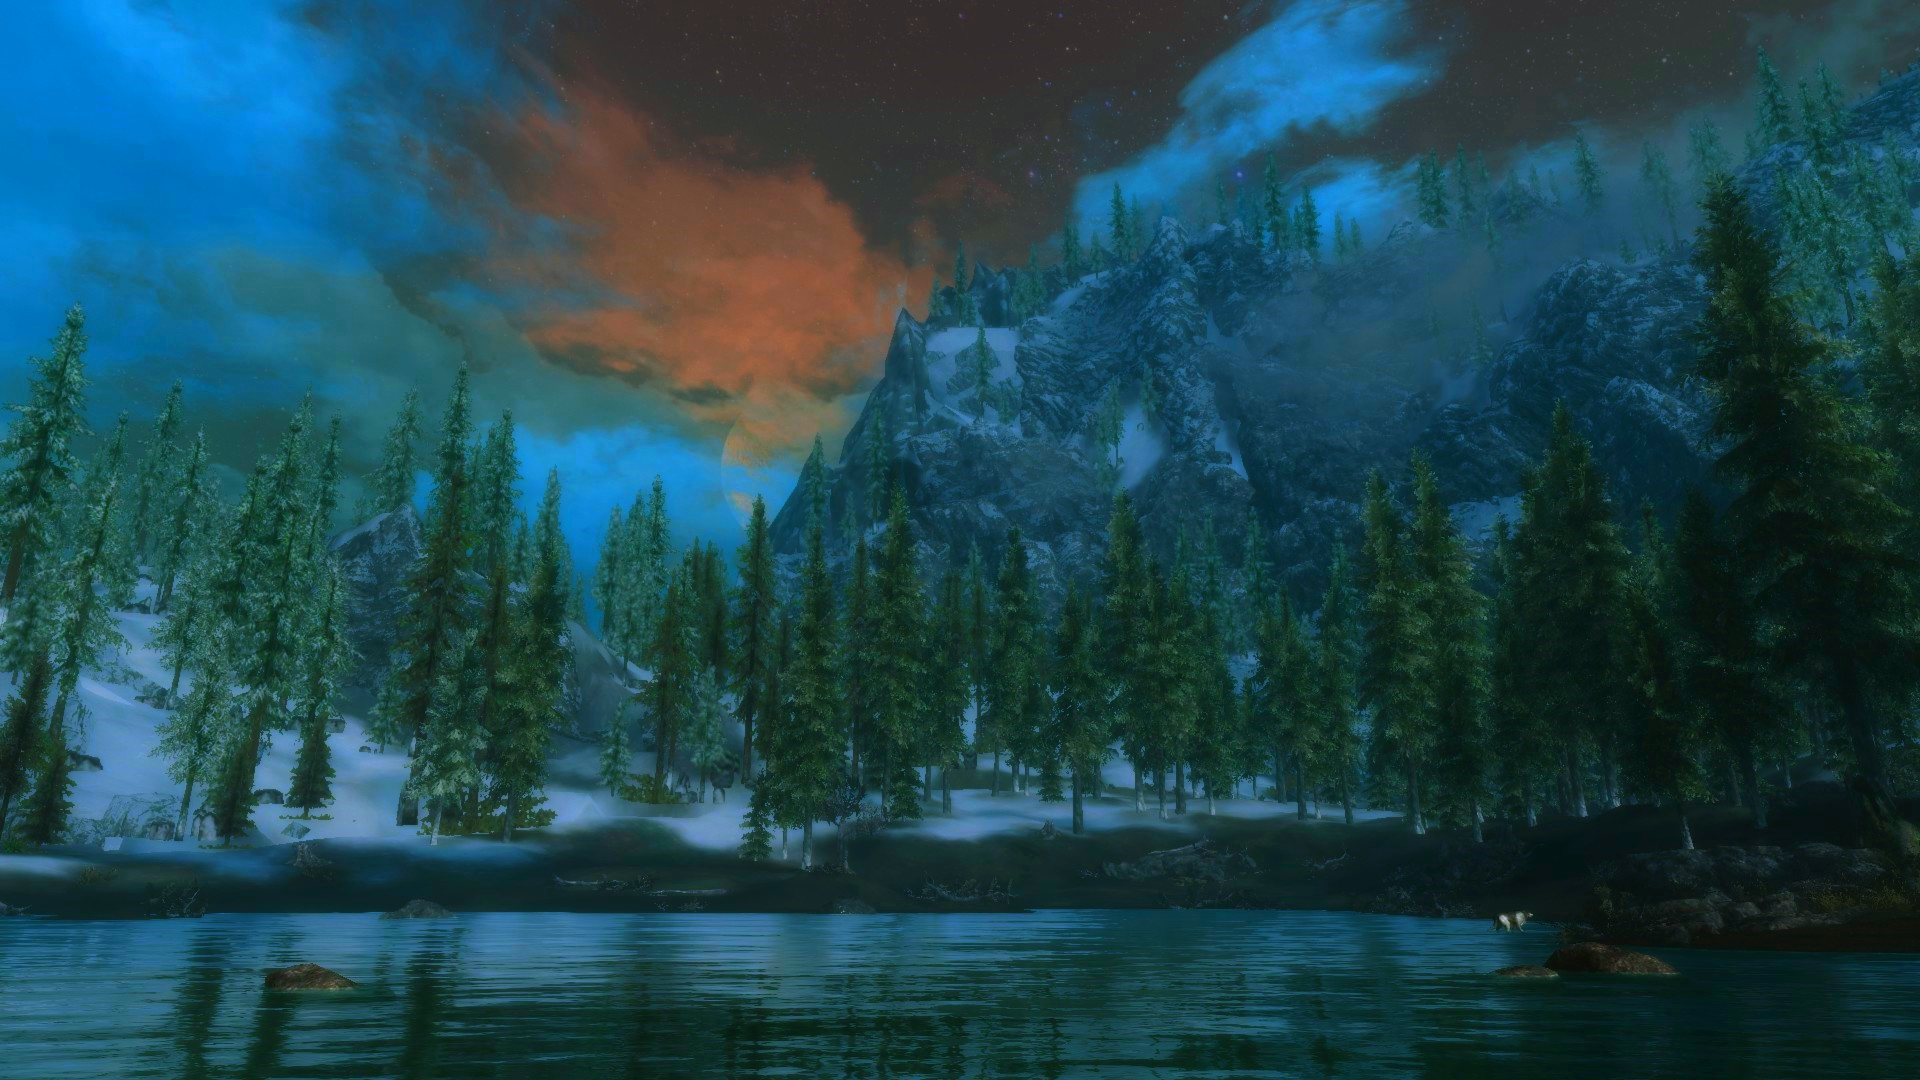 Moon rising above skyrim